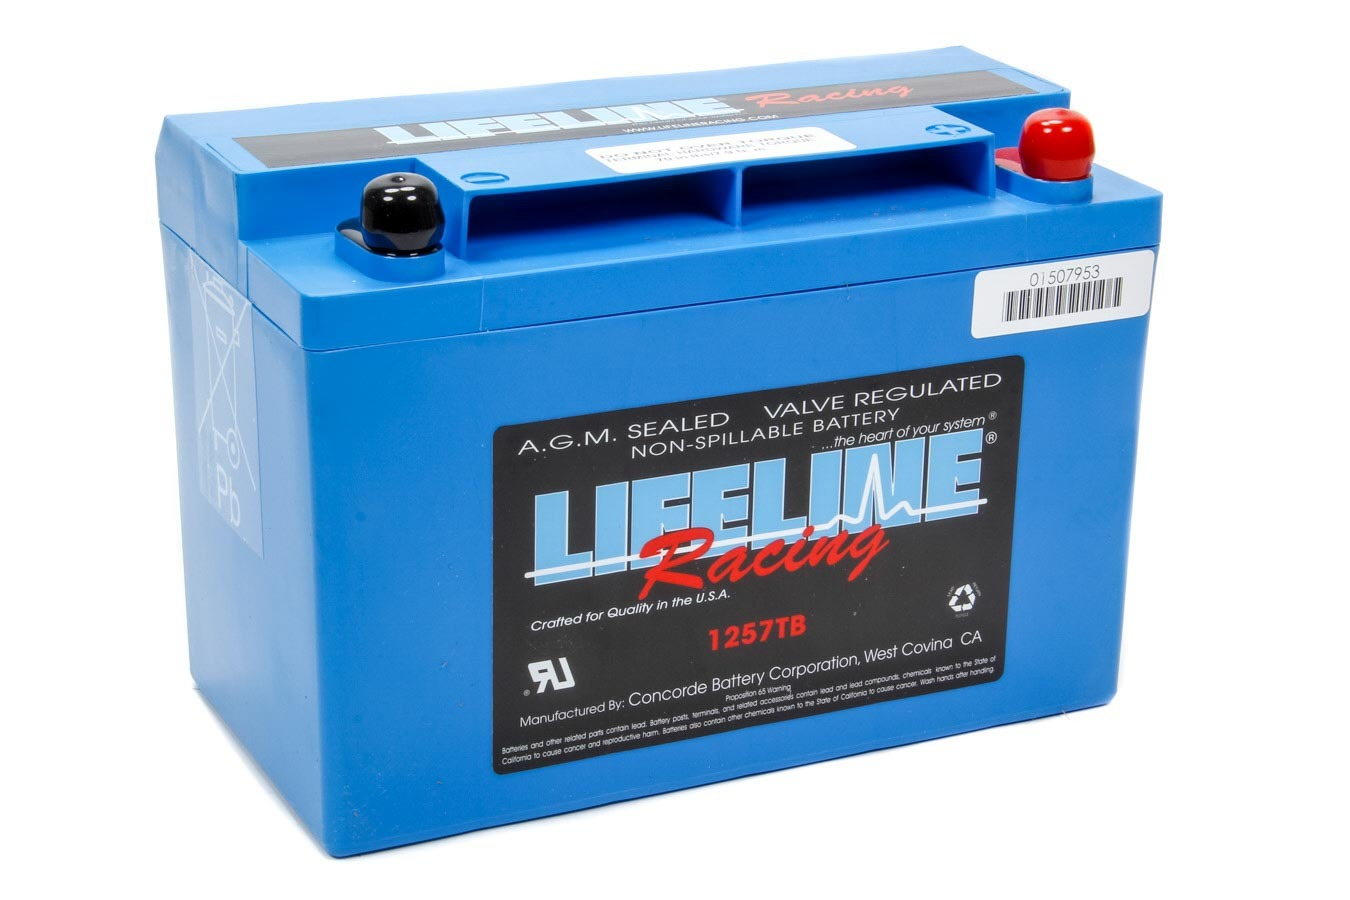 Power Cell Battery 9.75x5.25x6.875